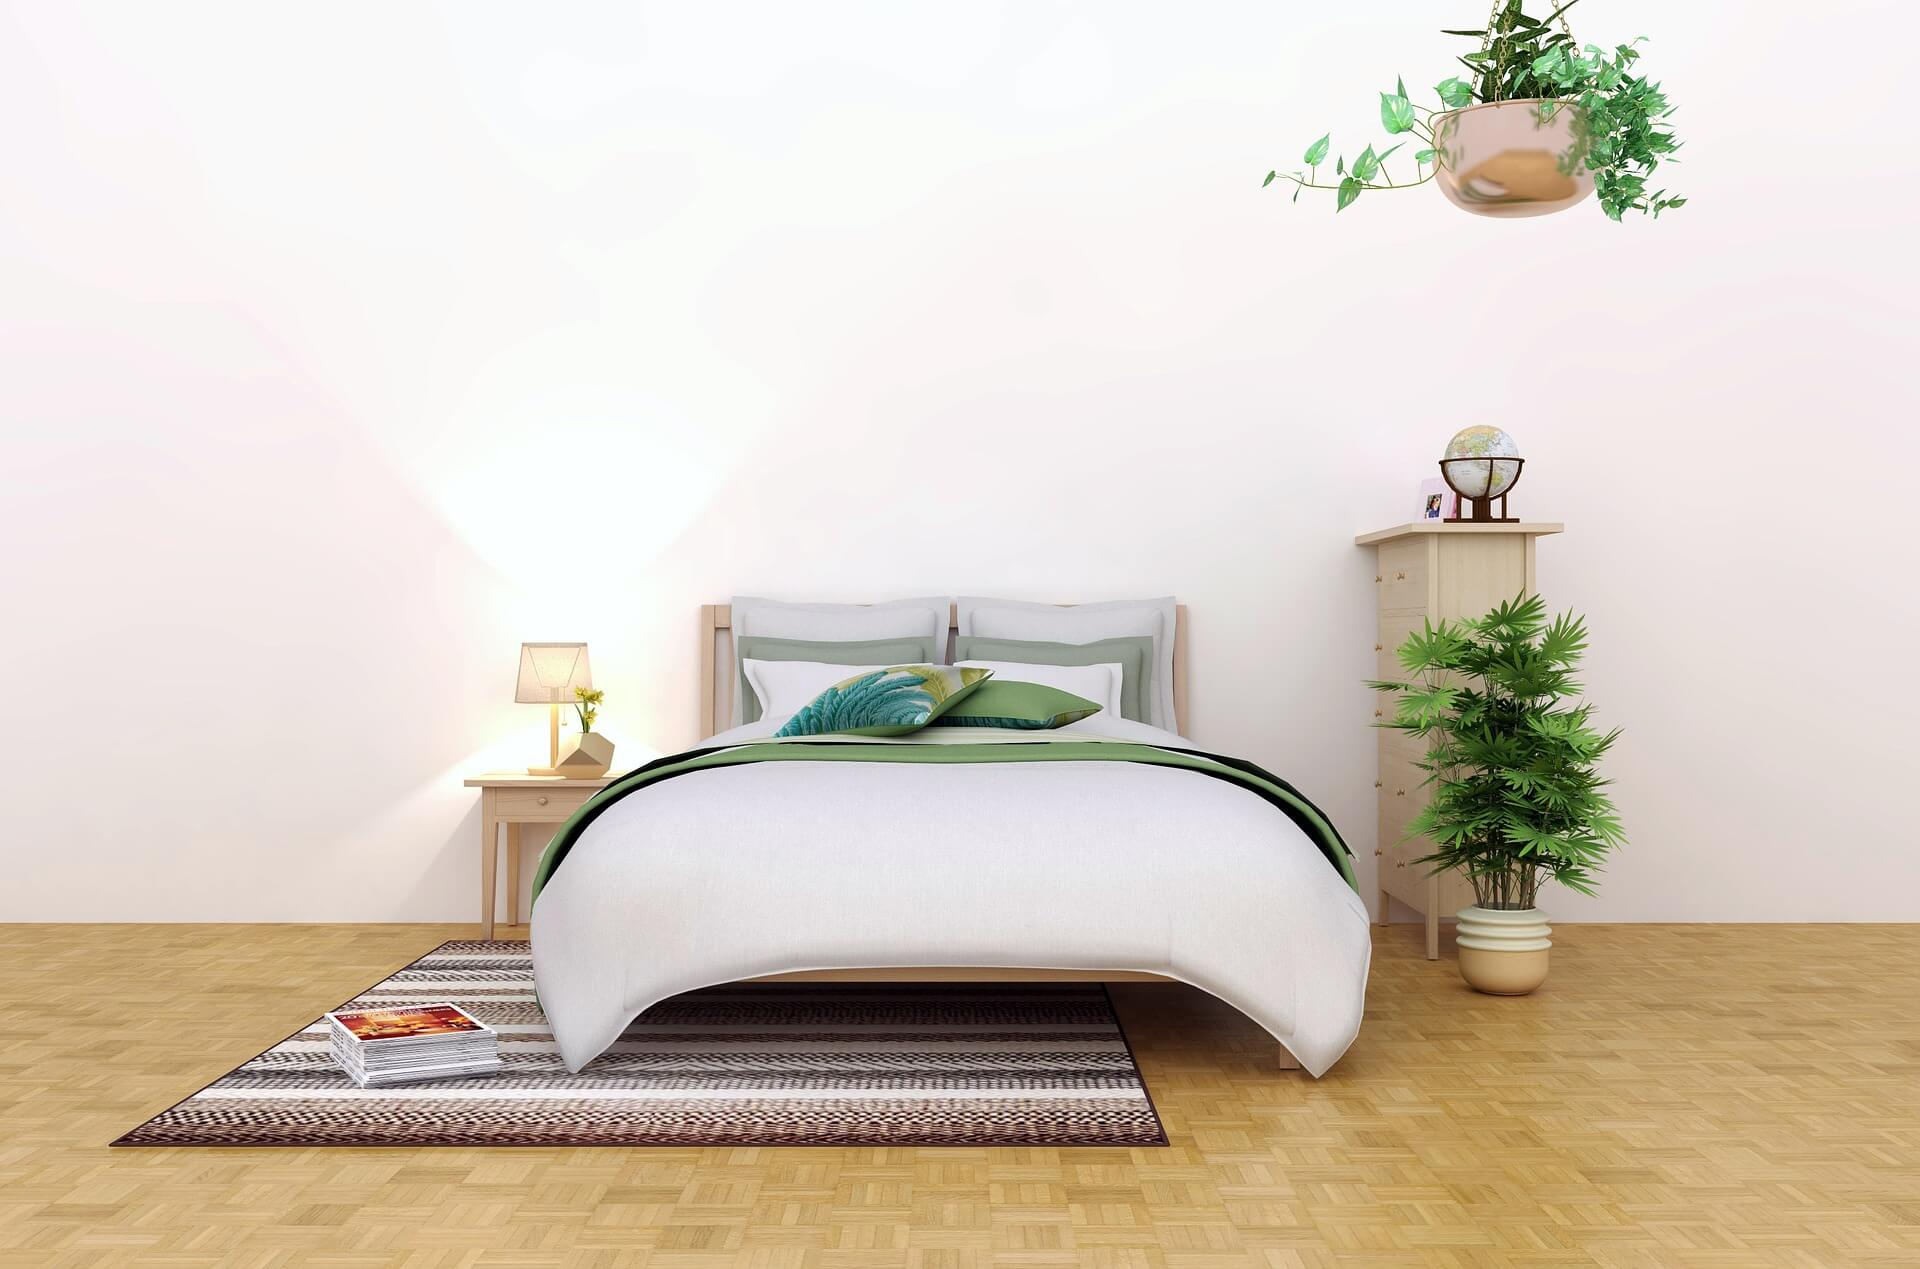 The Emperia Mattress is Wink & Nod and India's